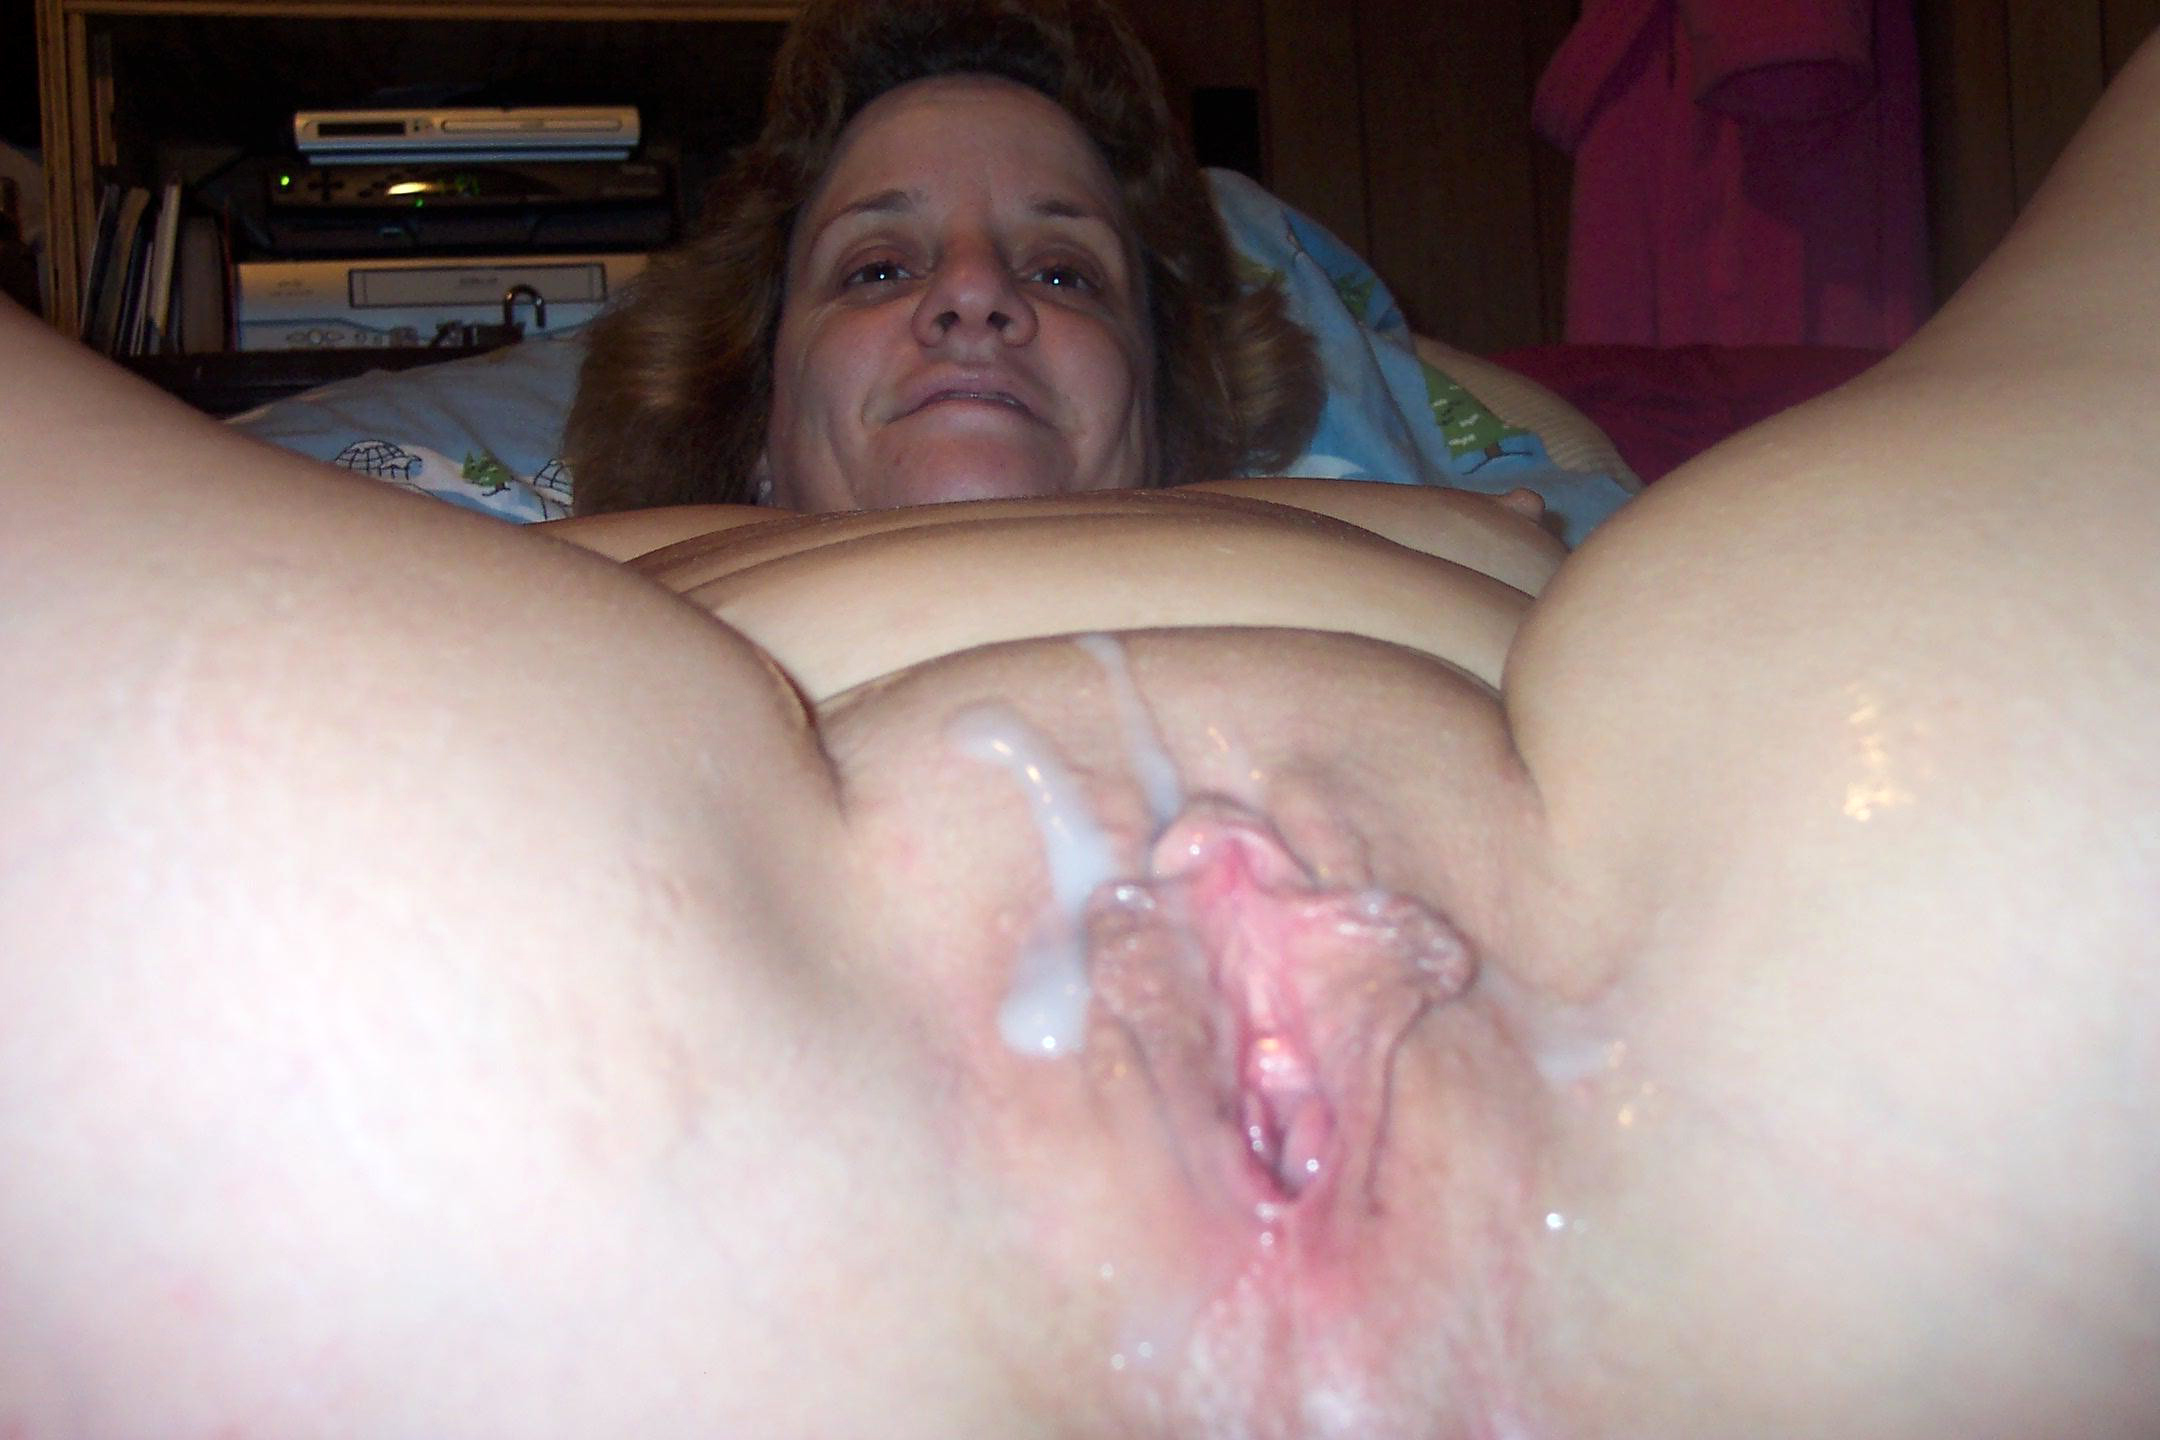 apologise, but, opinion, free home made handjob movies remarkable, valuable